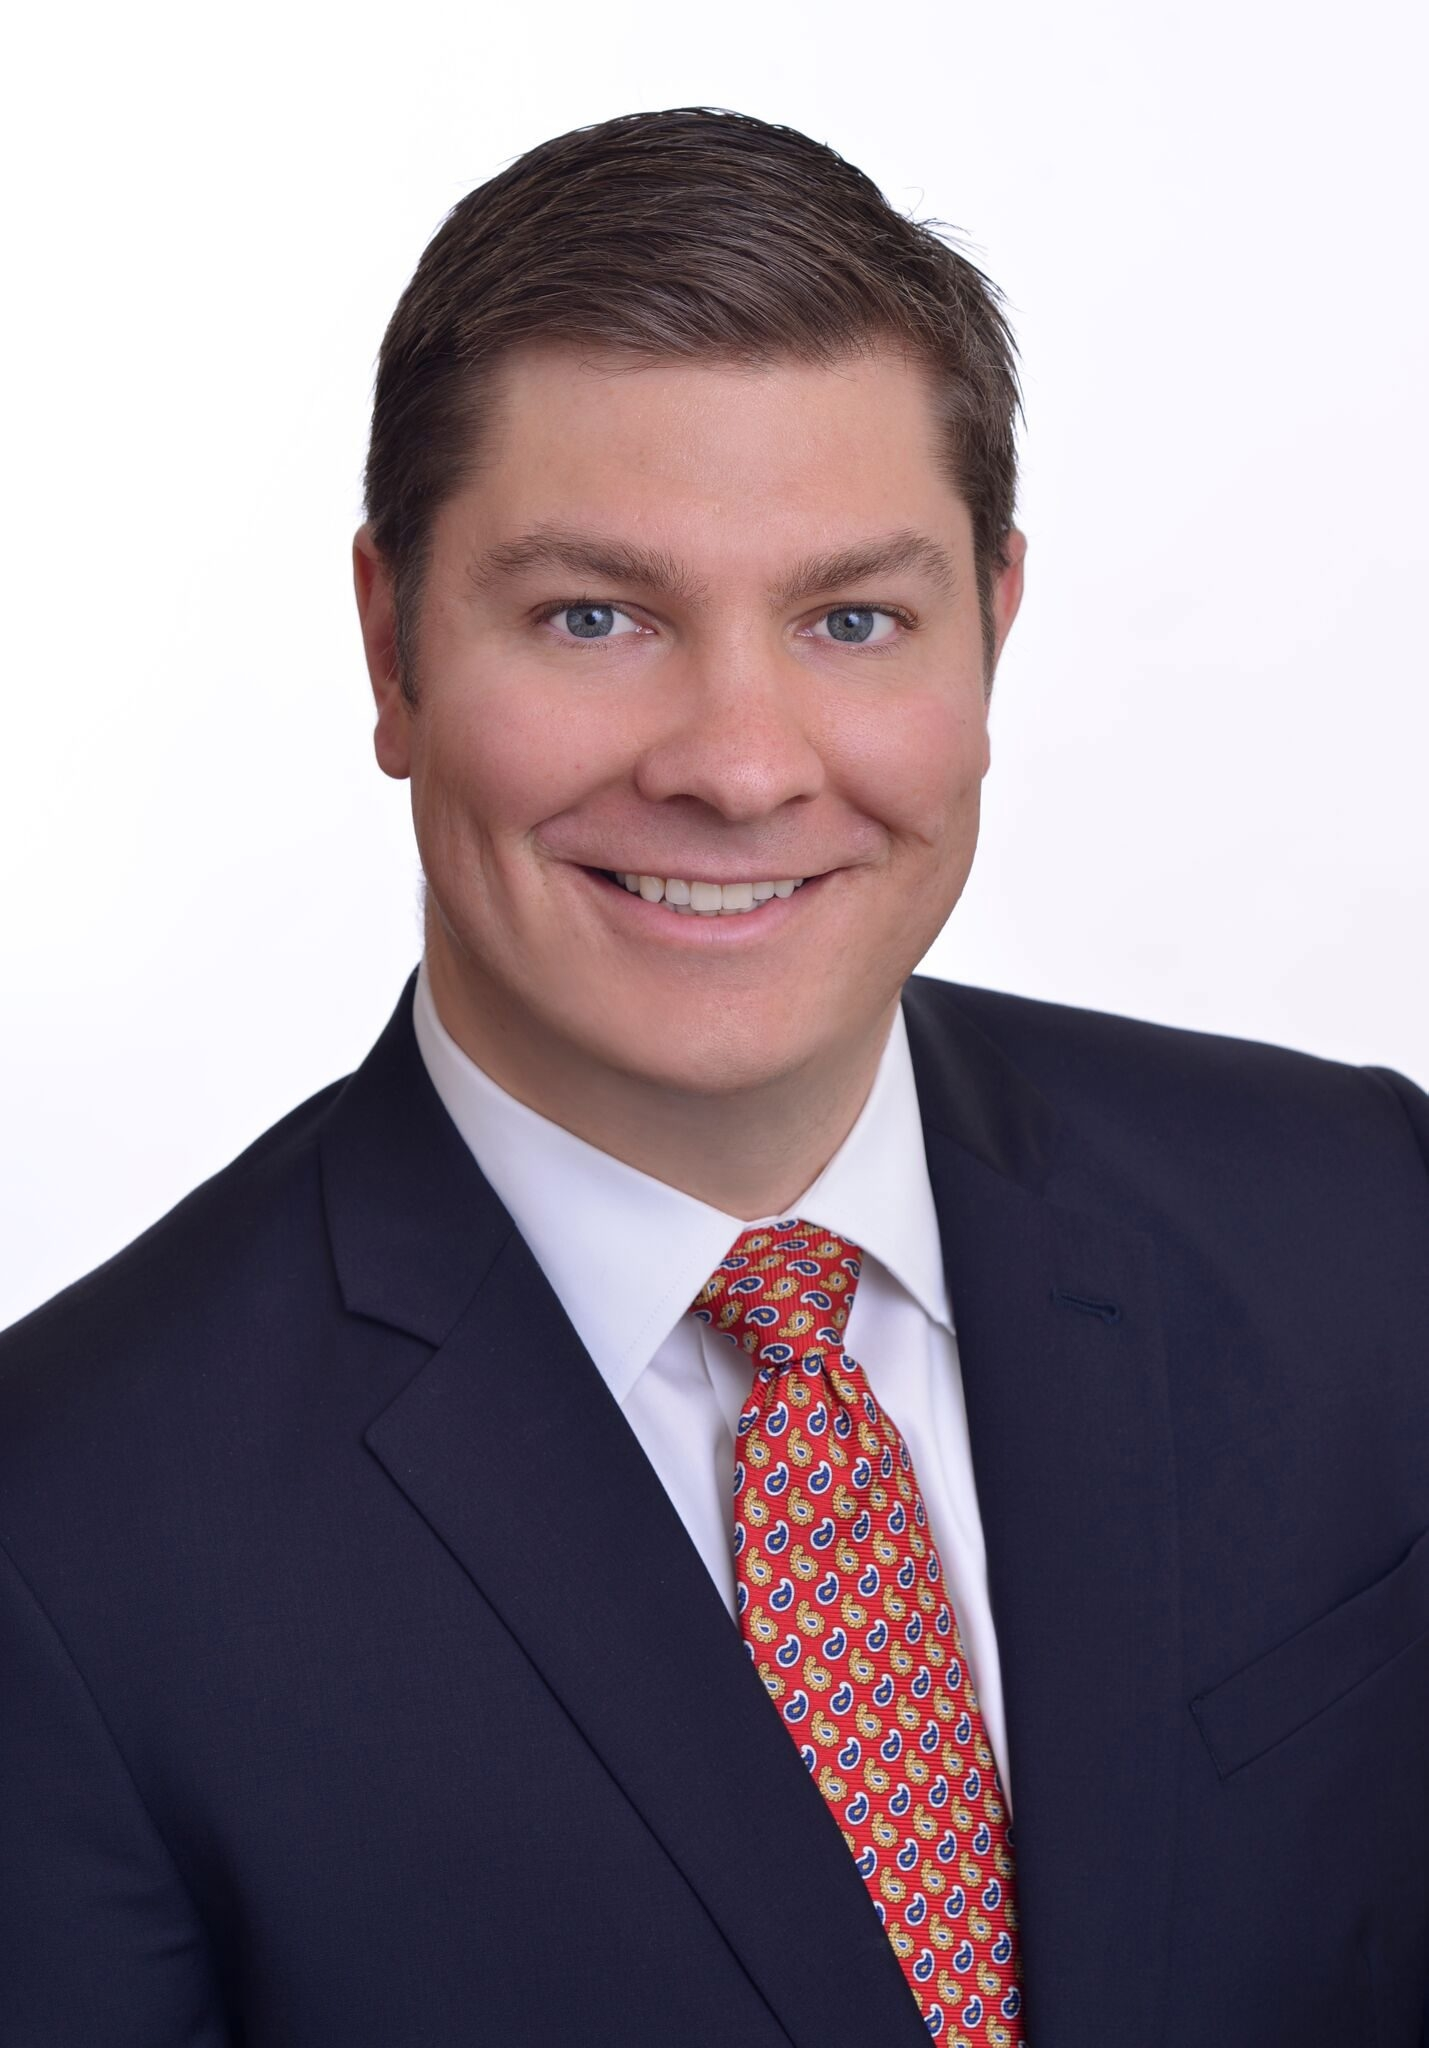 Brandon Rath was named chief investment officer at Calamar Capital Services